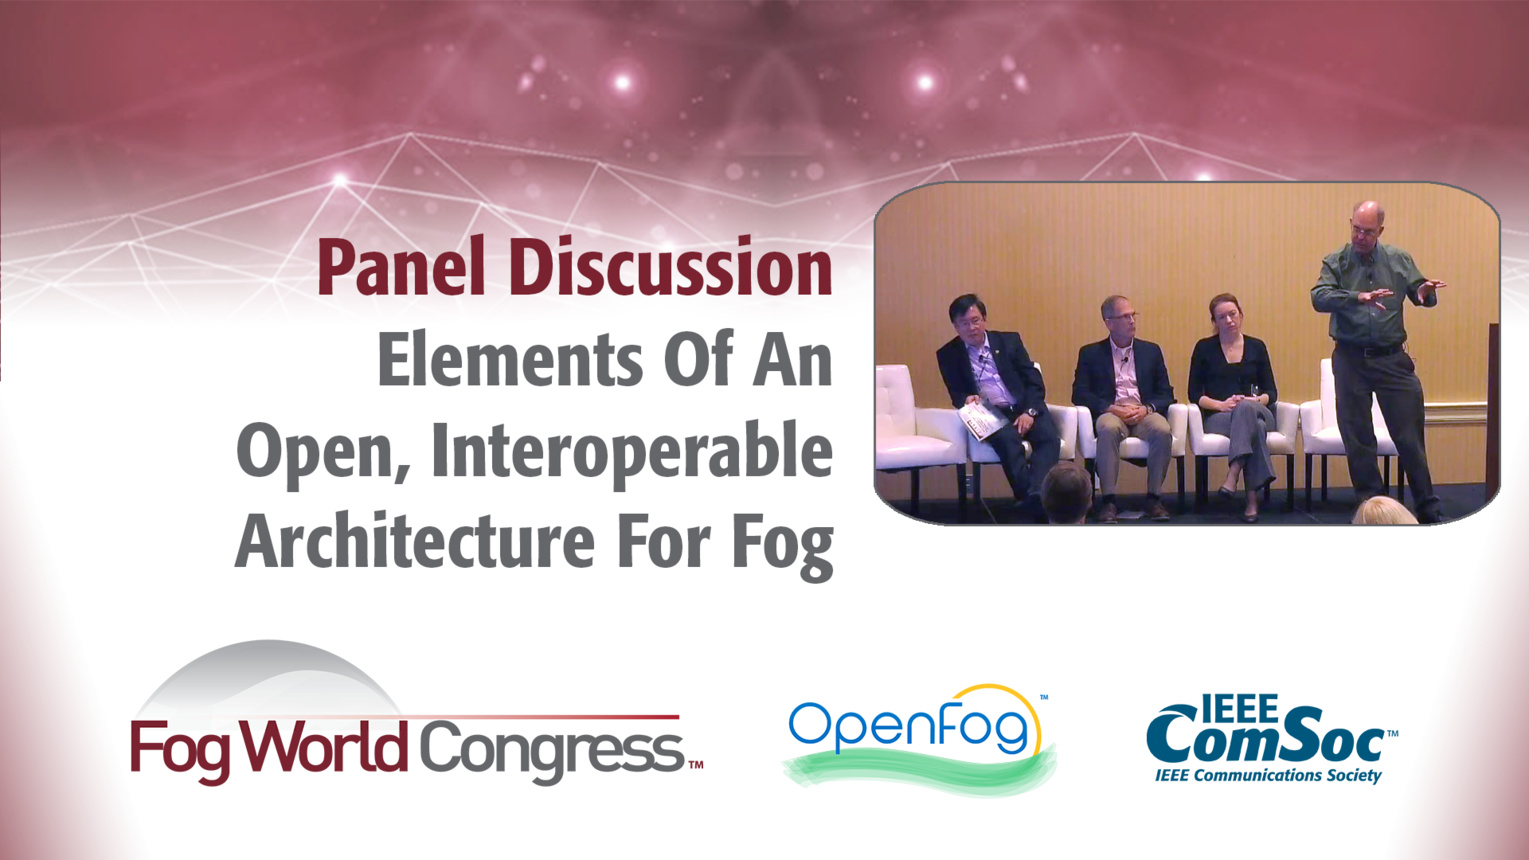 Elements Of An Open, Interoperable Architecture For Fog - Fog World Congress 2017